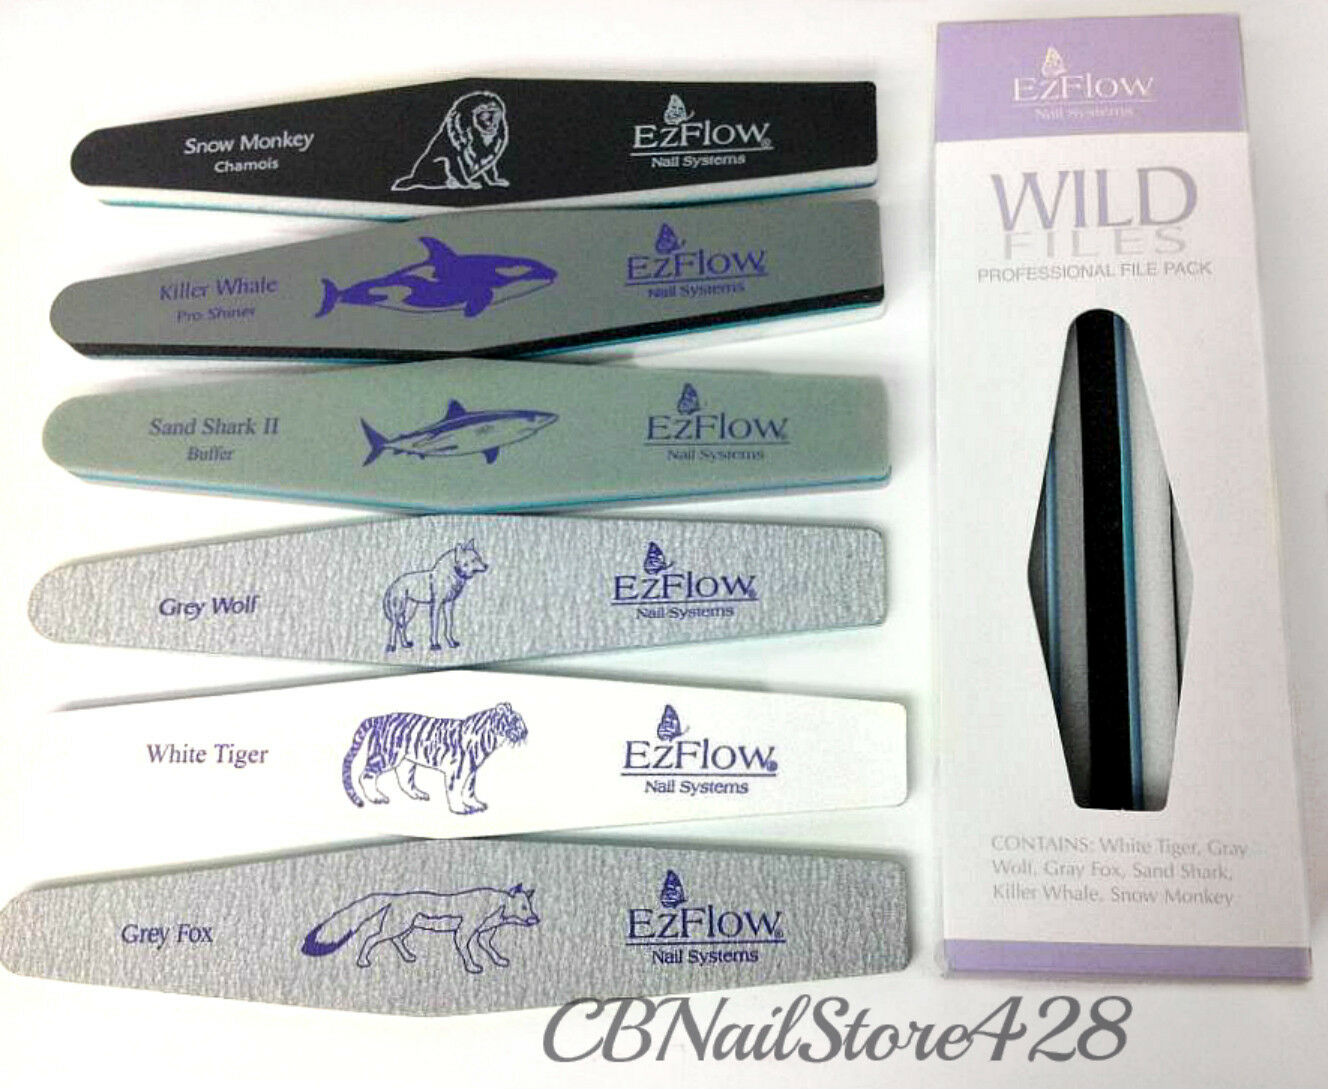 EzFlow Nail Systems- Wild Files - Professional File Sample Pack ...